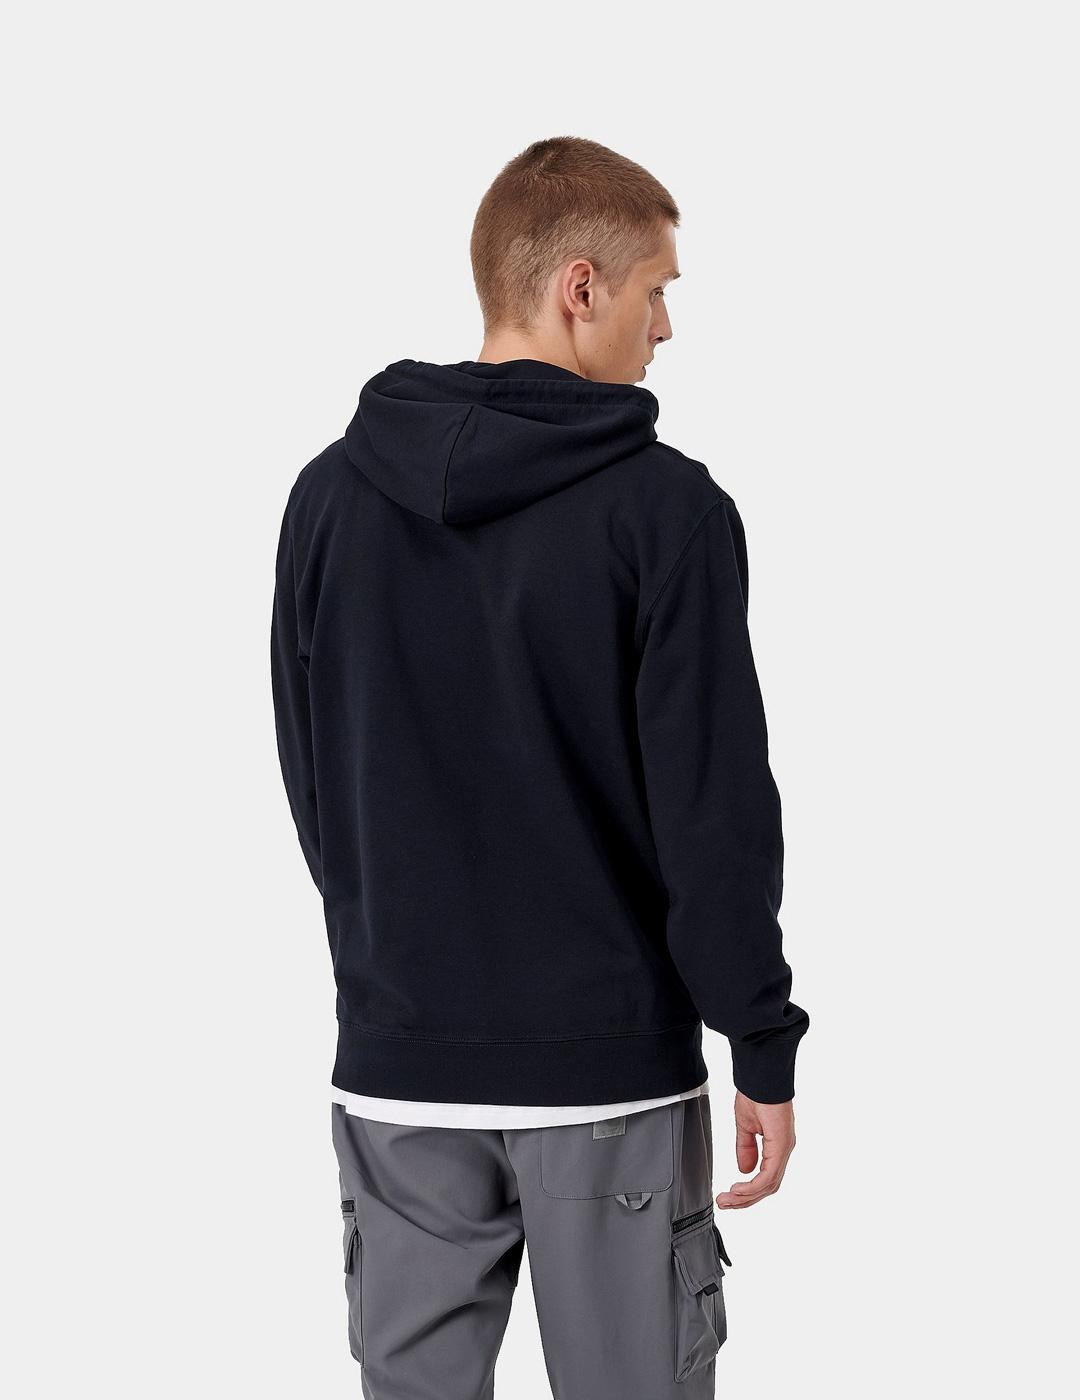 Sudadera Capucha Carhartt UNIVERSITY - Dark Navy / White